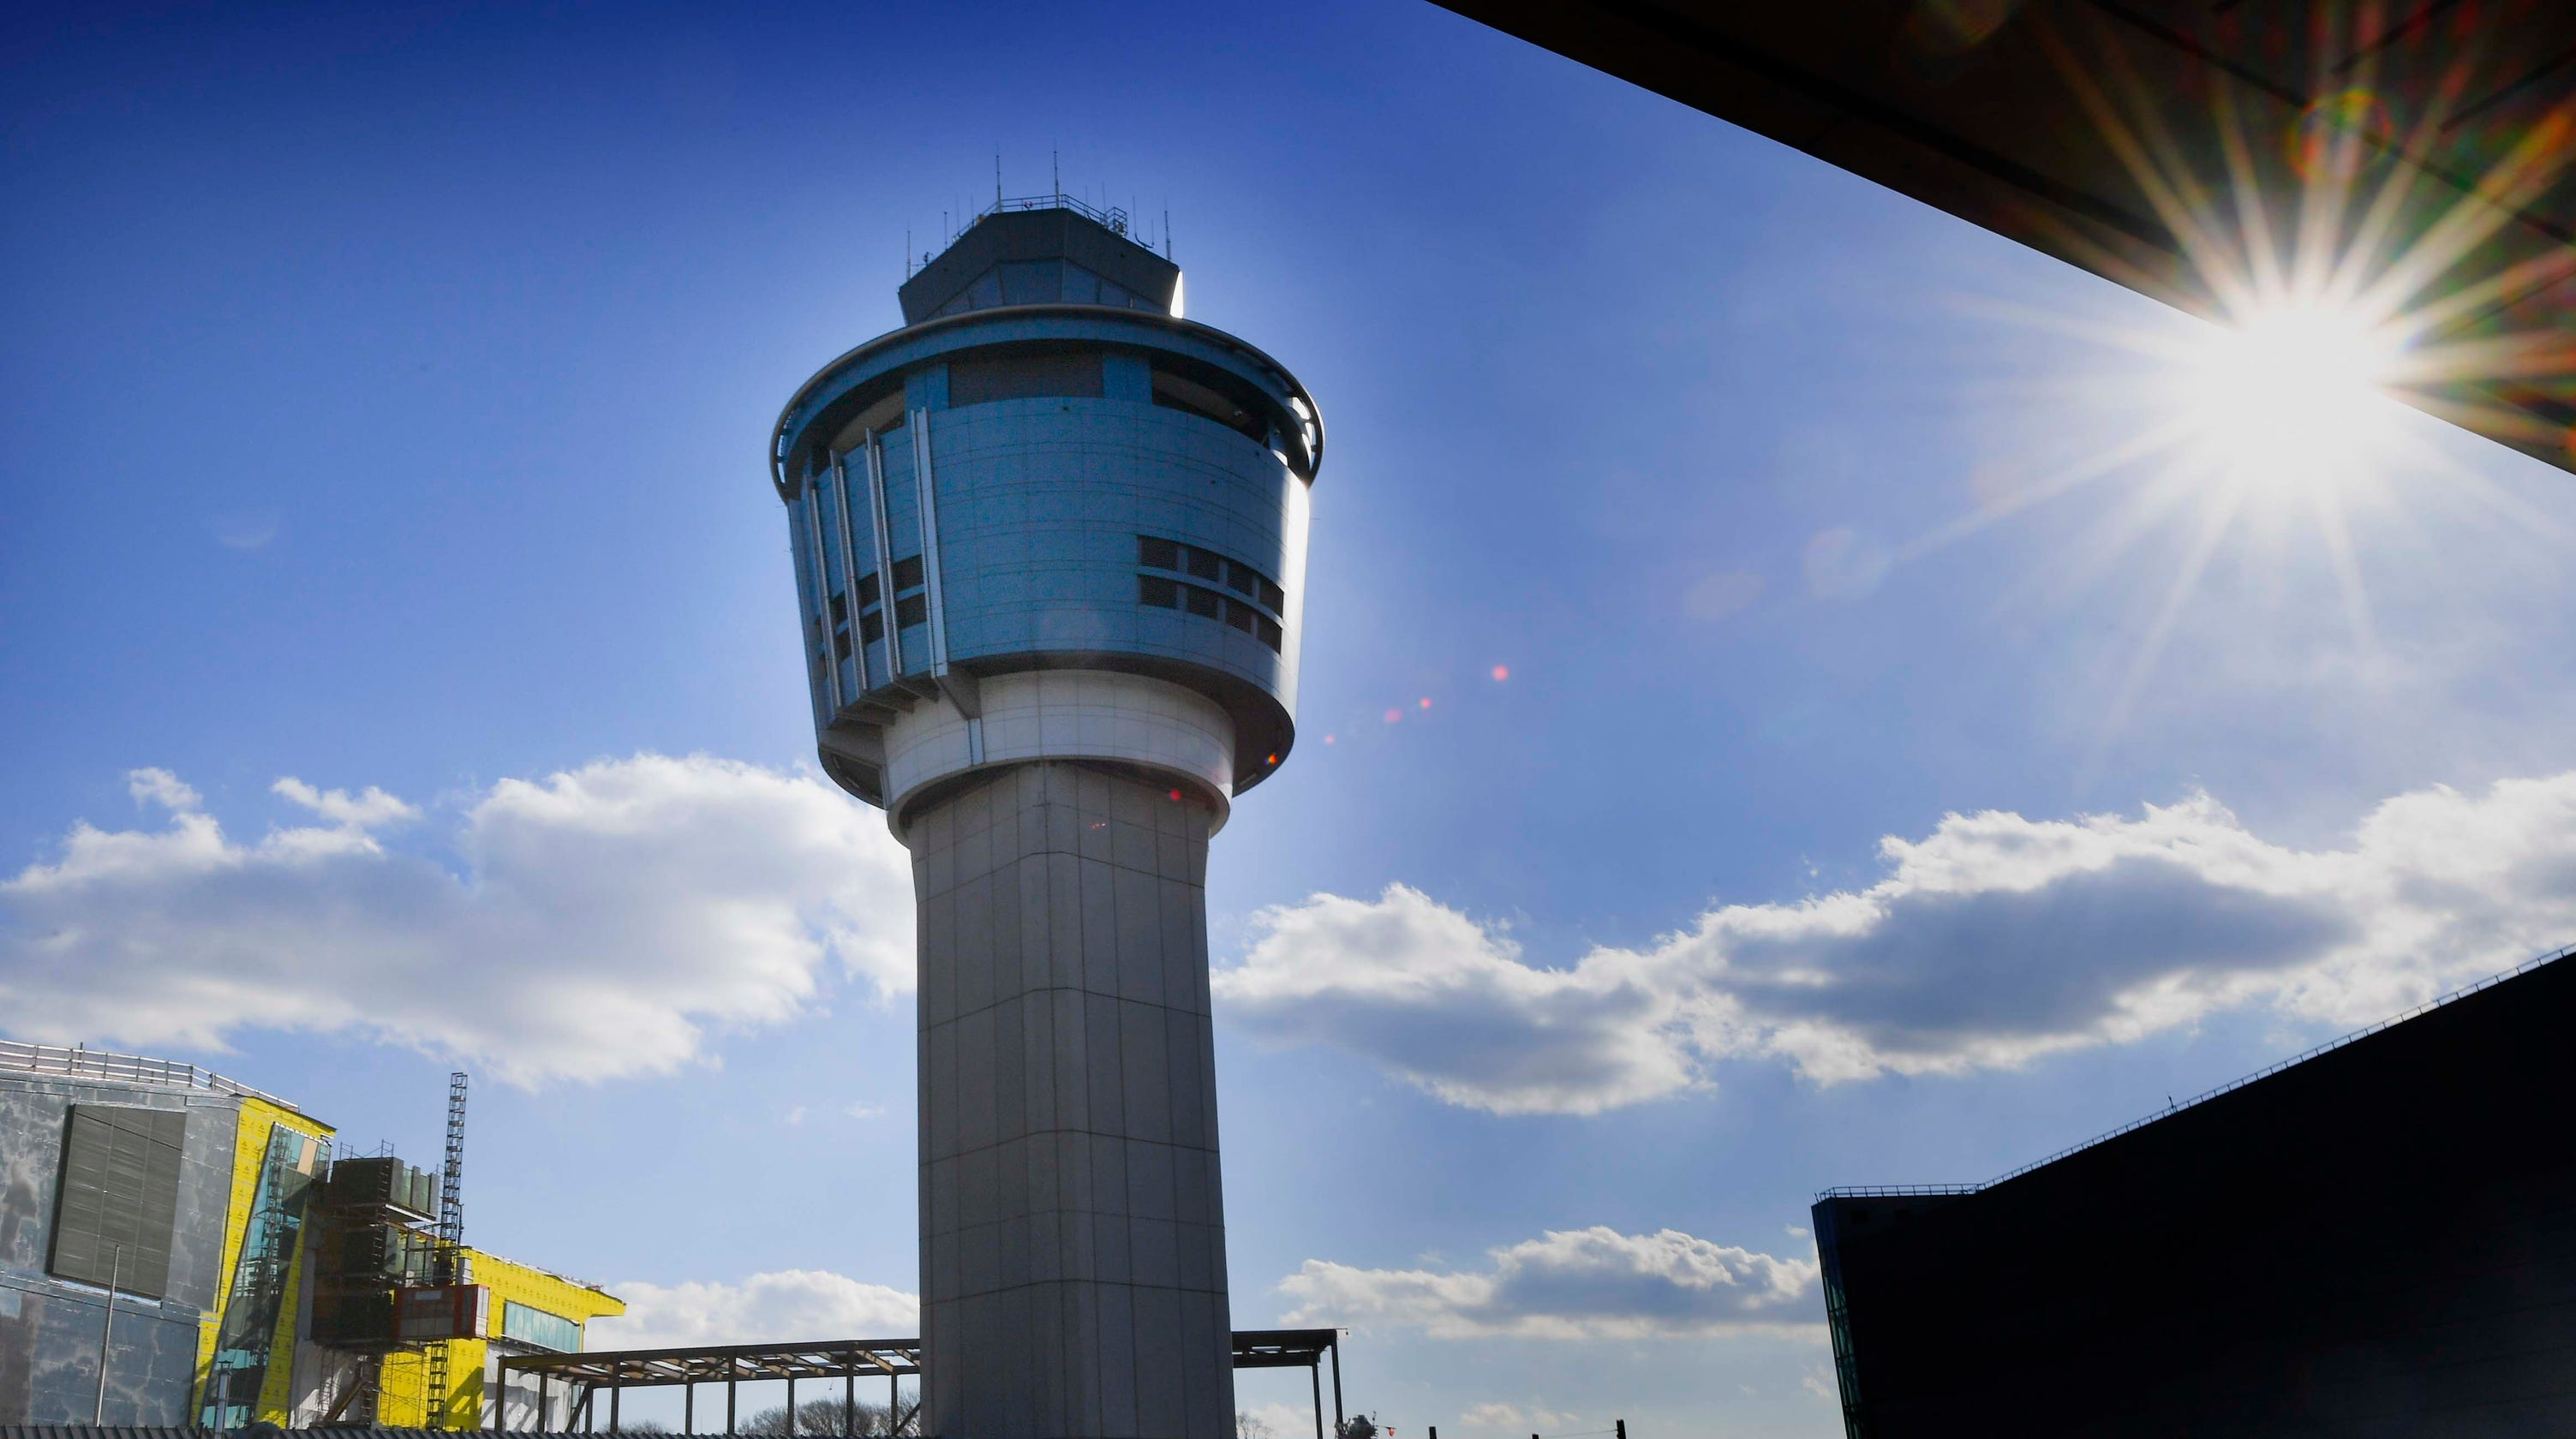 Government shutdown: Flight delays in at 4 airports due to